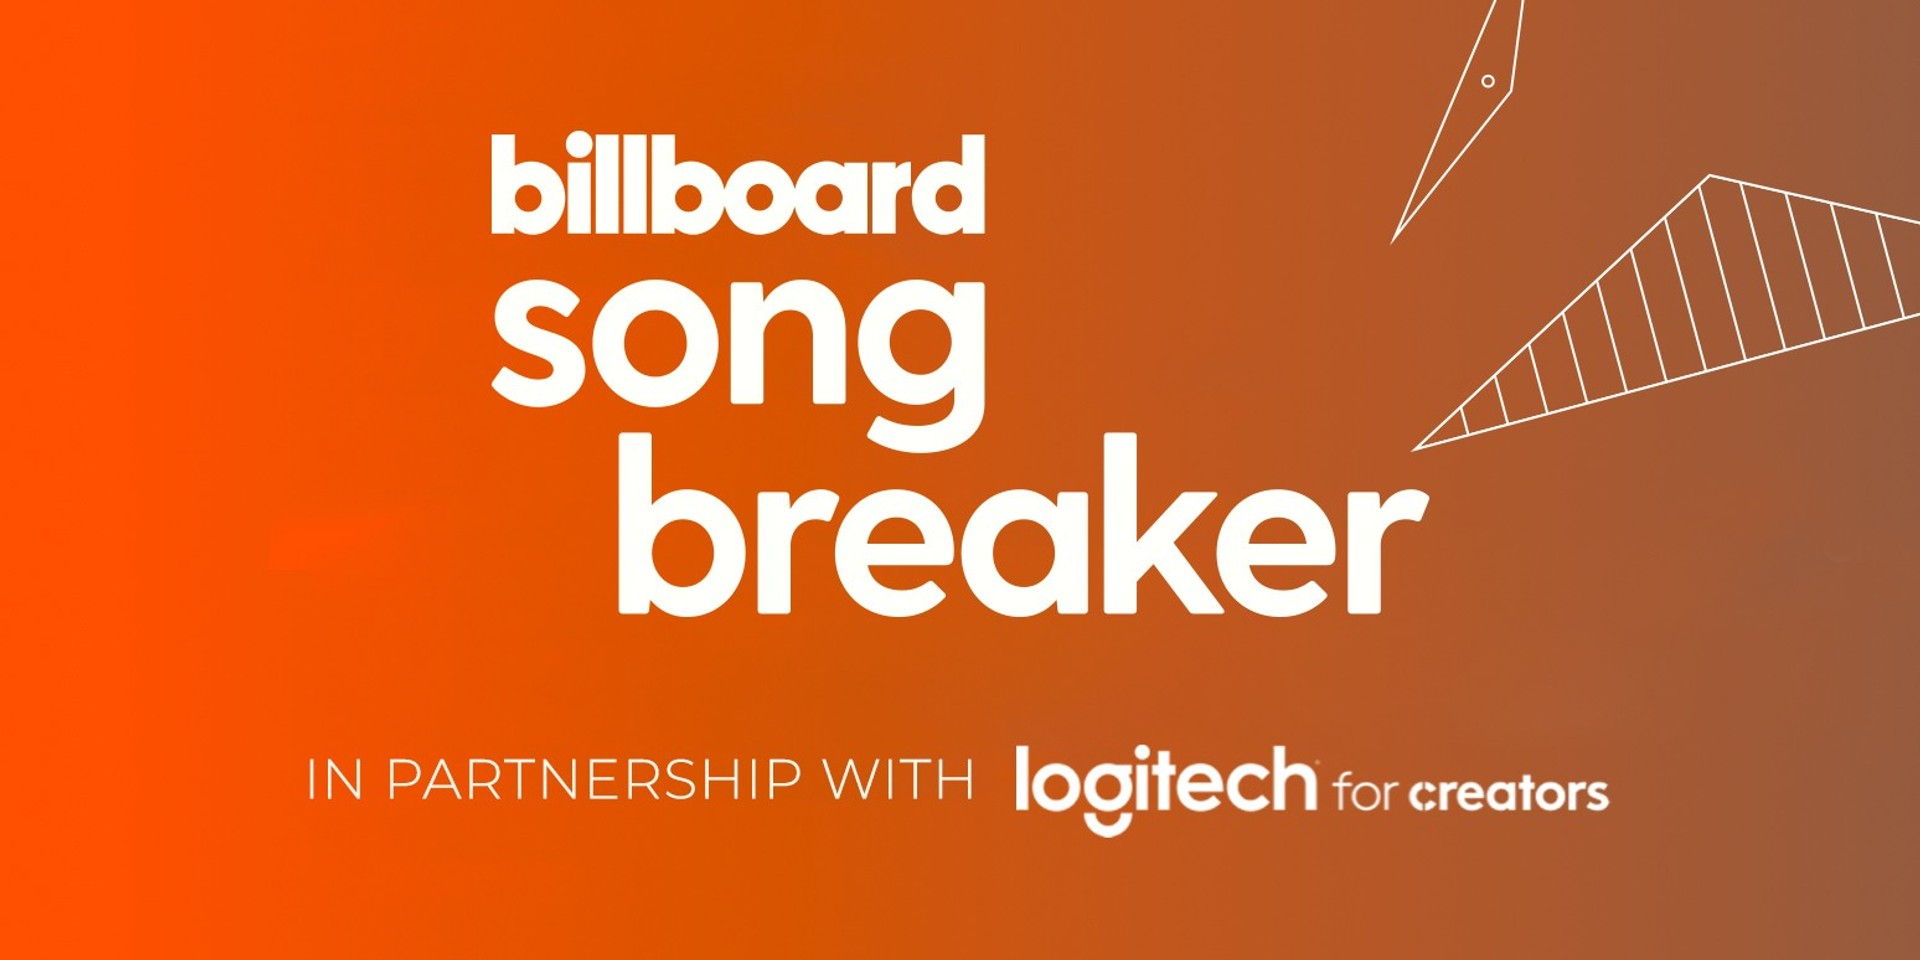 Billboard partners with Logitech for new 'Song Breaker' chart that ranks music influencers on TikTok and YouTube